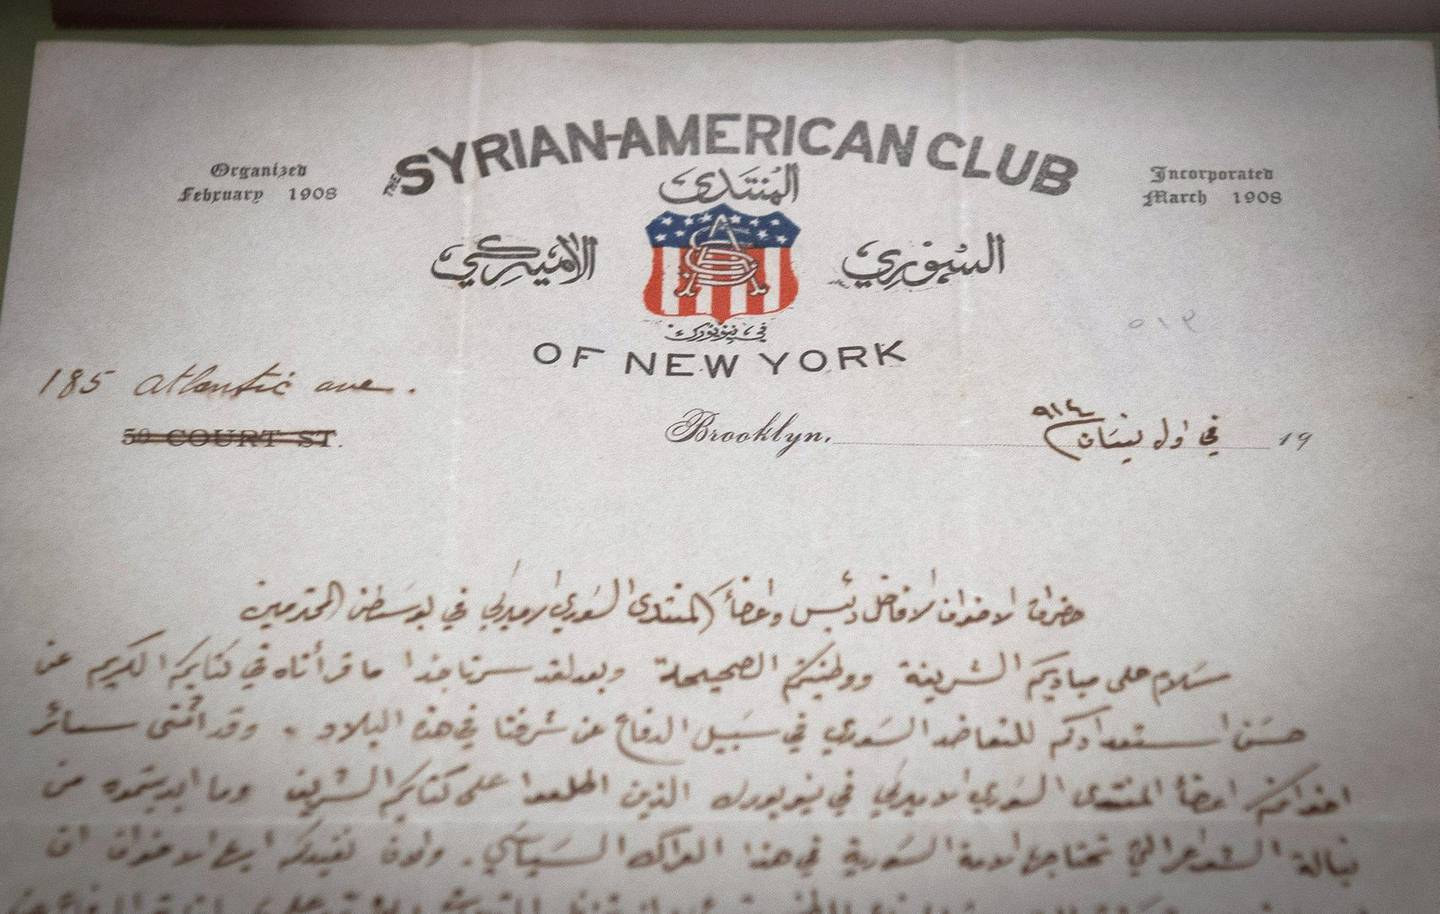 """A letter from the Syrian-American Club of New York on display at the exhibition, """"Little Syria, NY, An Immigrant Community's Life & Legacy"""" on view from October 1, 2016 - January 9, 2017 at the Ellis Island National Museum of Immigration, September 27, 2016, in New York. (Photo by Bryan R. Smith / AFP)"""